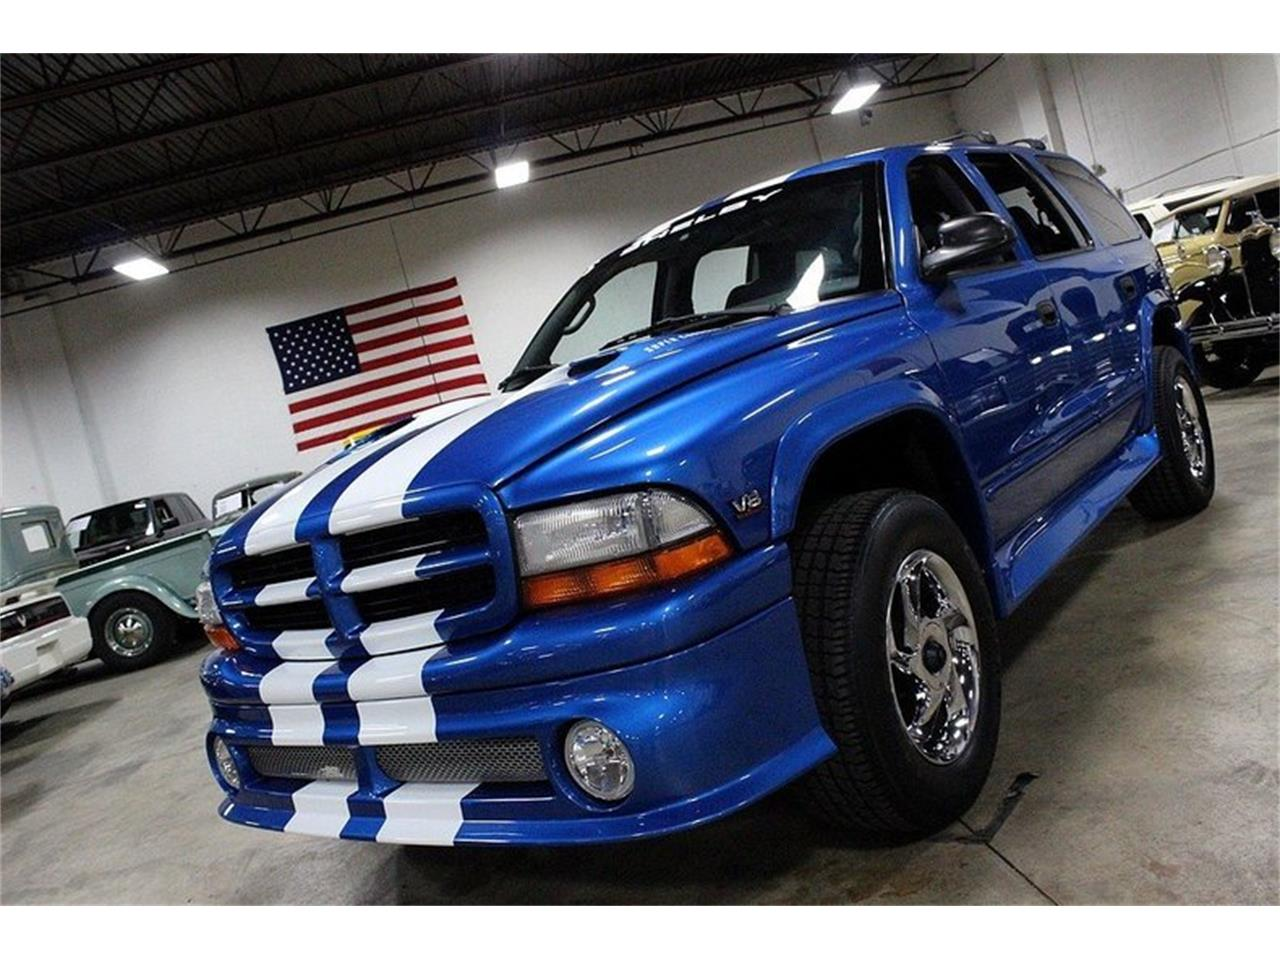 Large Picture of '99 Durango Shelby SP-360 located in Michigan - $31,900.00 Offered by GR Auto Gallery - MB1Y